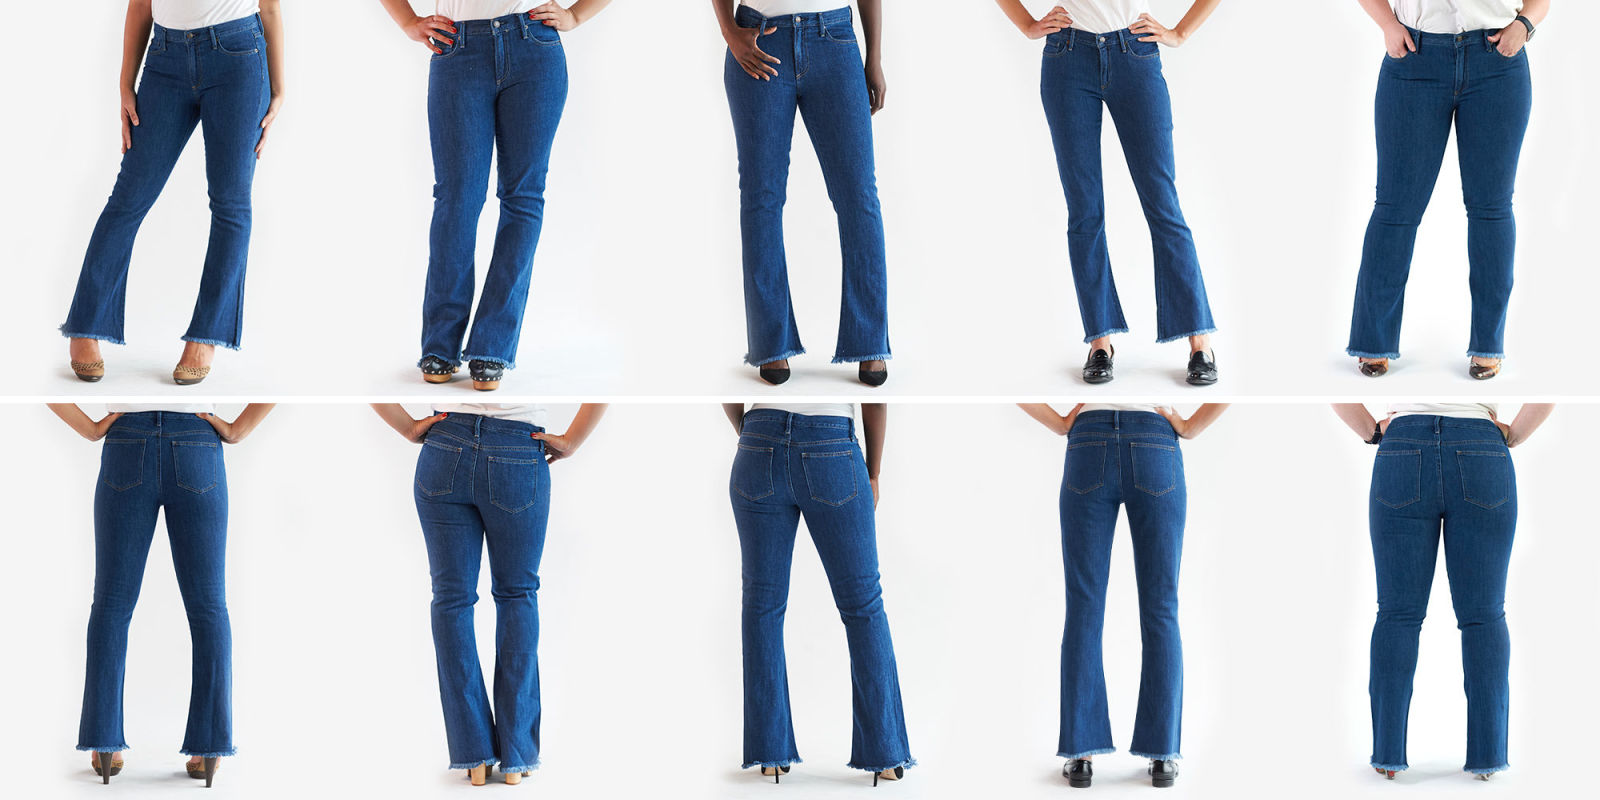 10 Best Types of Jeans for Women u2013 Flattering Denim Styles for All Body Types